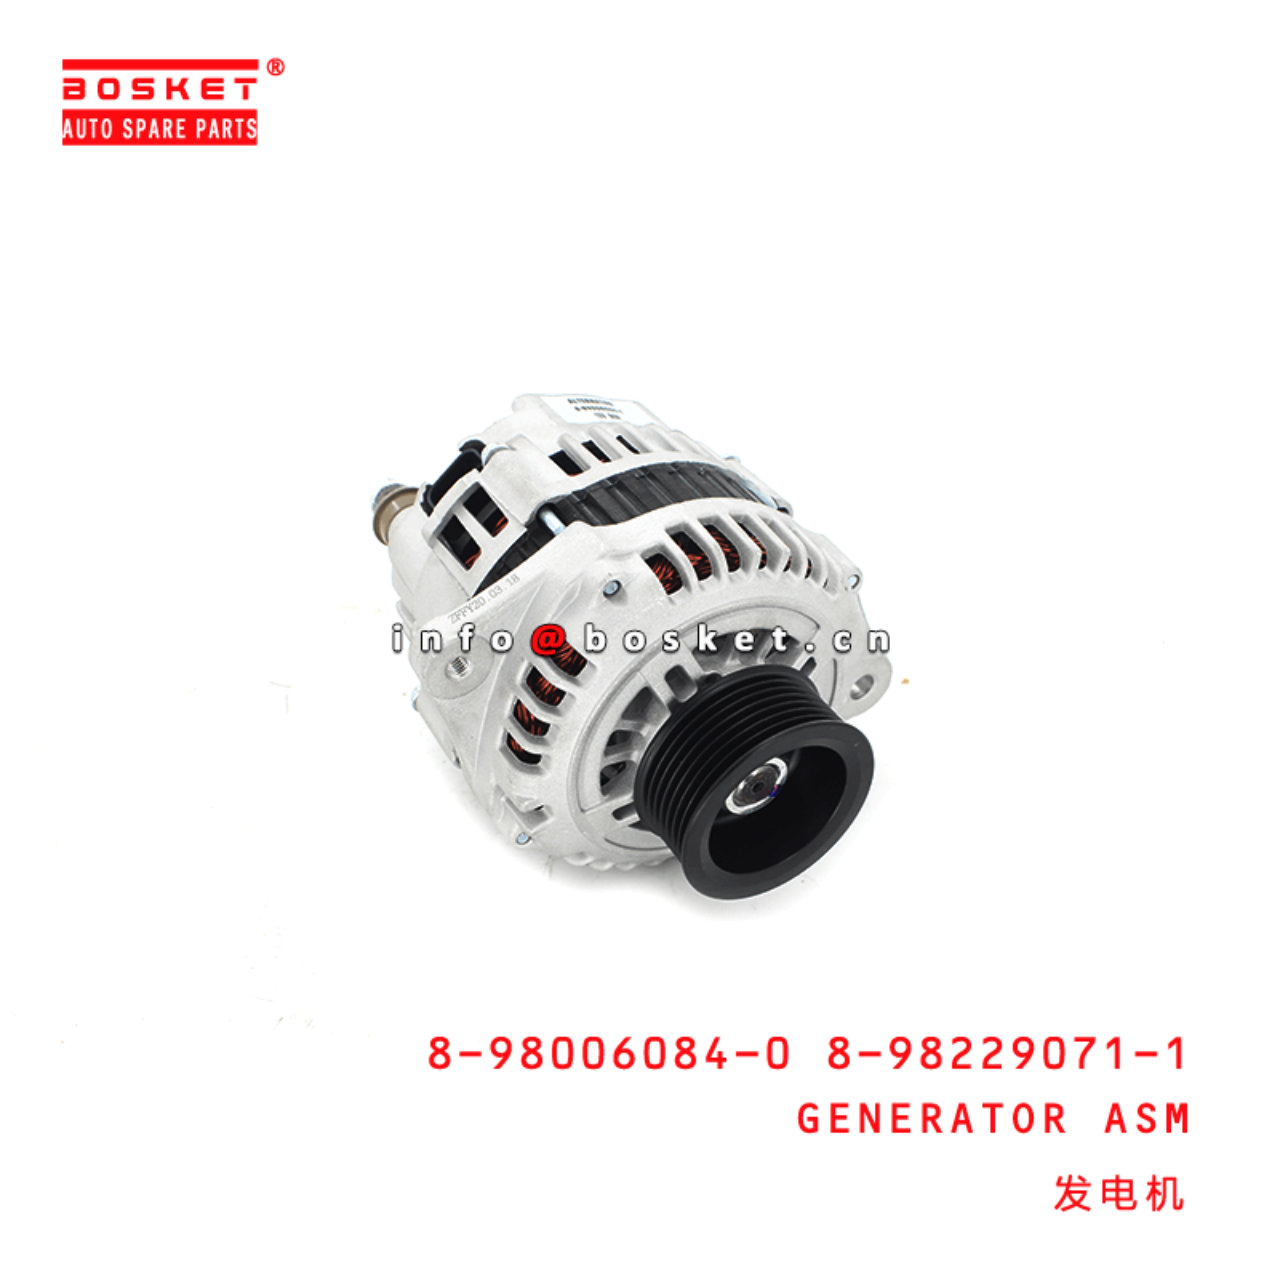 8-98006084-0 8-98229071-1 Generator Assembly 12V 90A 8980060840 8982290711 Suitable for ISUZU TFS TF